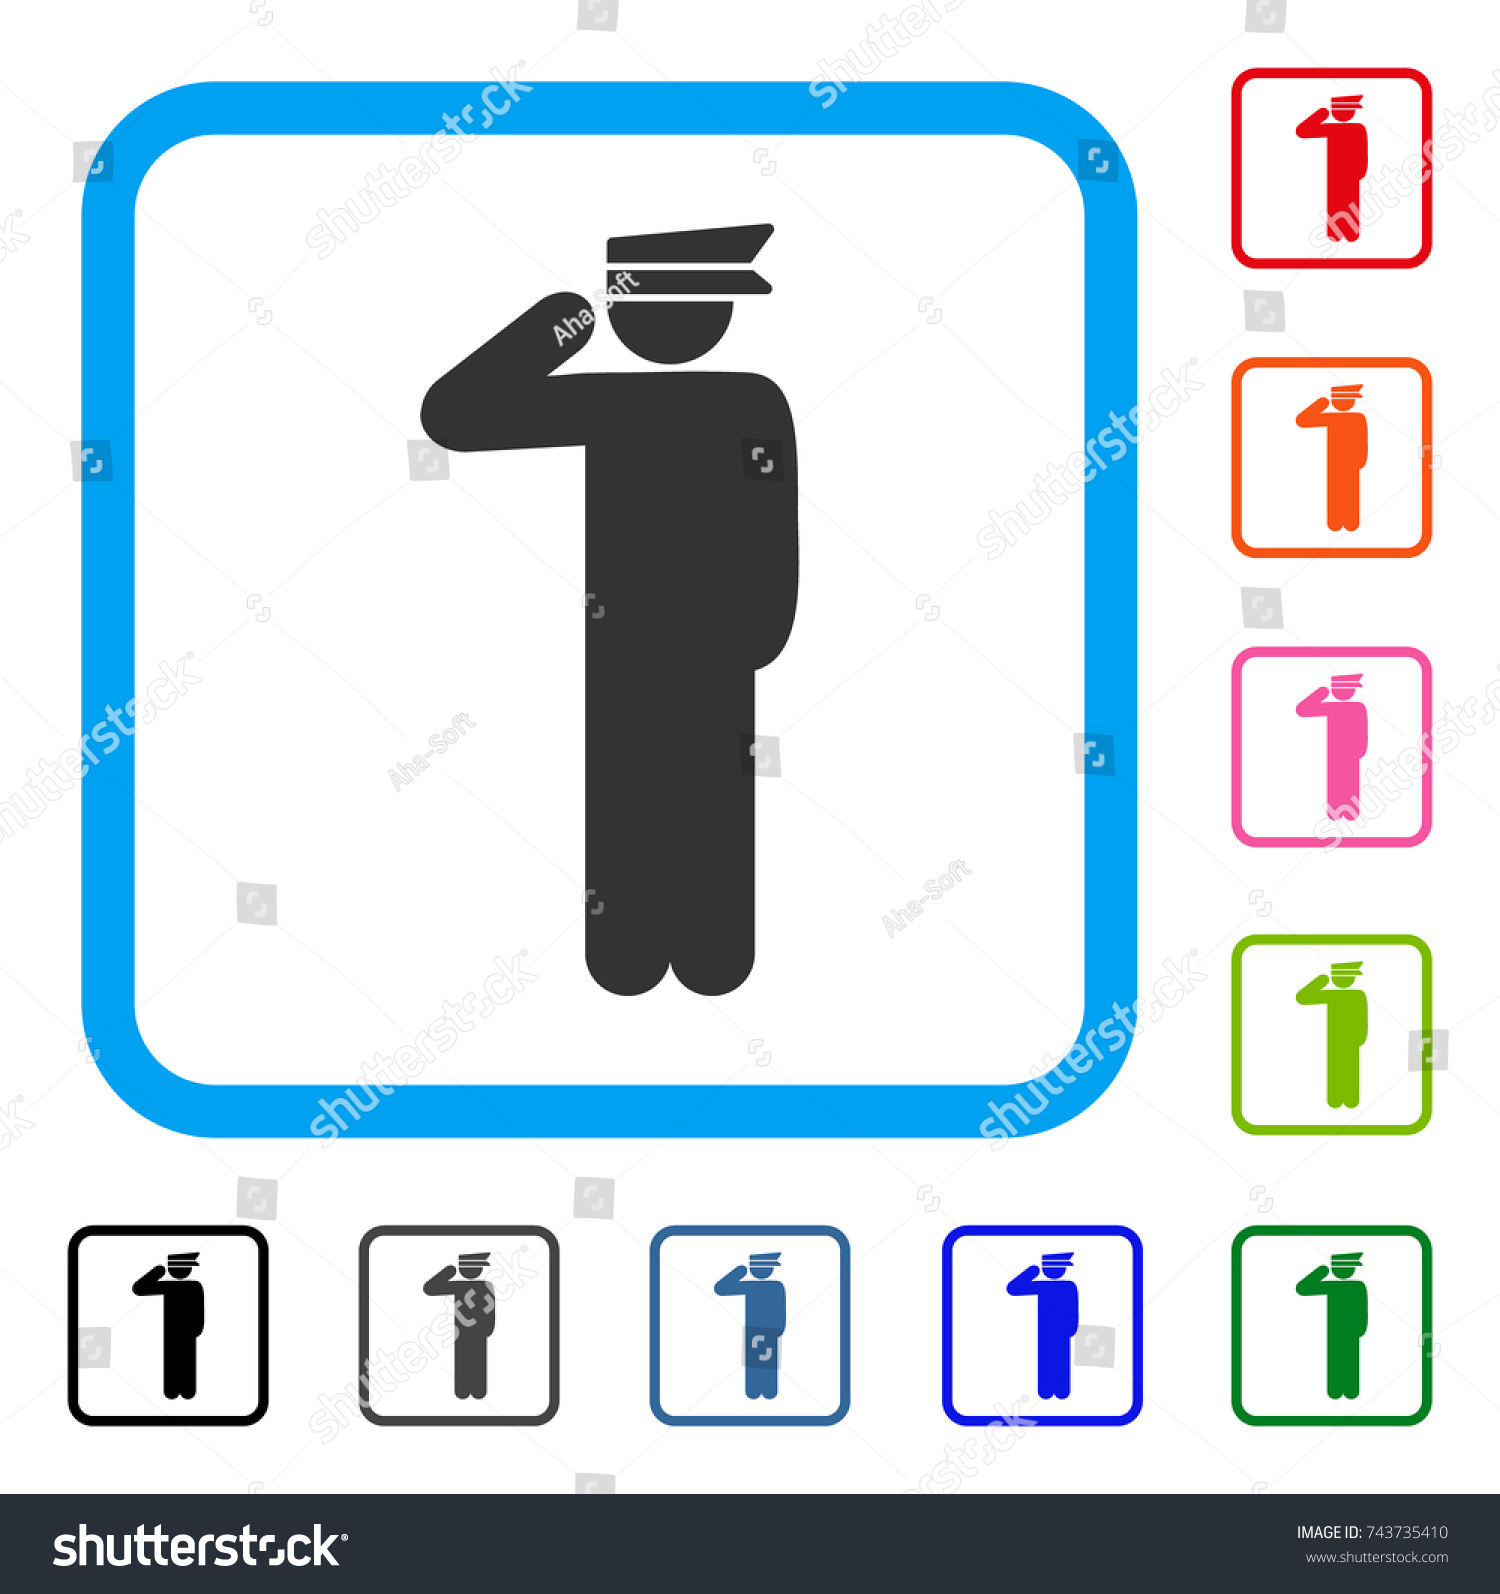 Police Officer Icon Flat Gray Pictogram Stock Vector (2018 ...